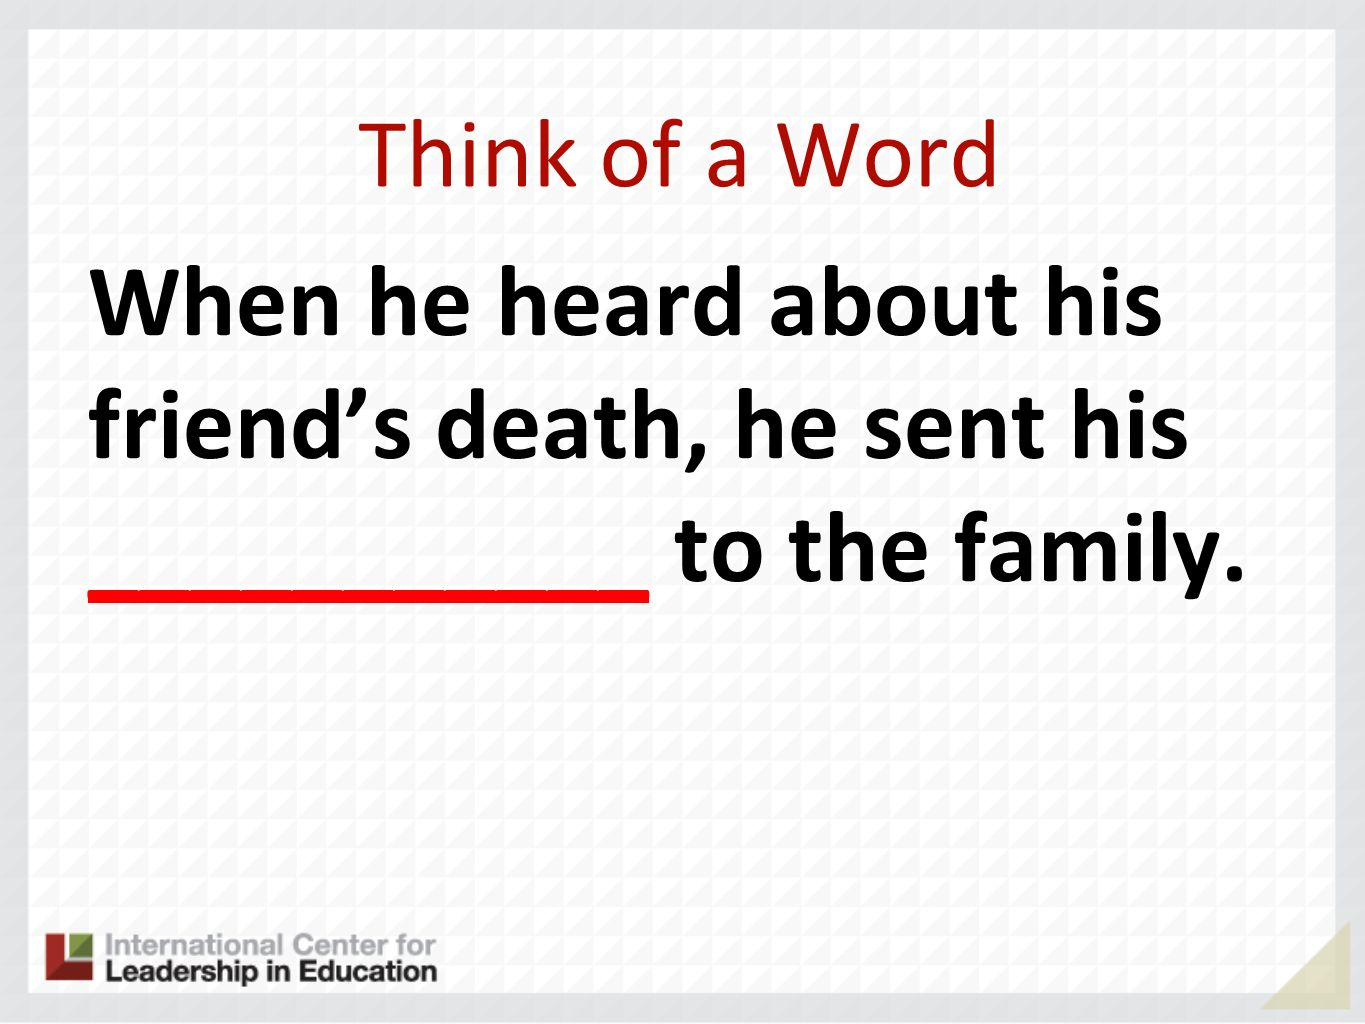 Think of a Word When he heard about his friend's death, he sent his ___________ to the family.